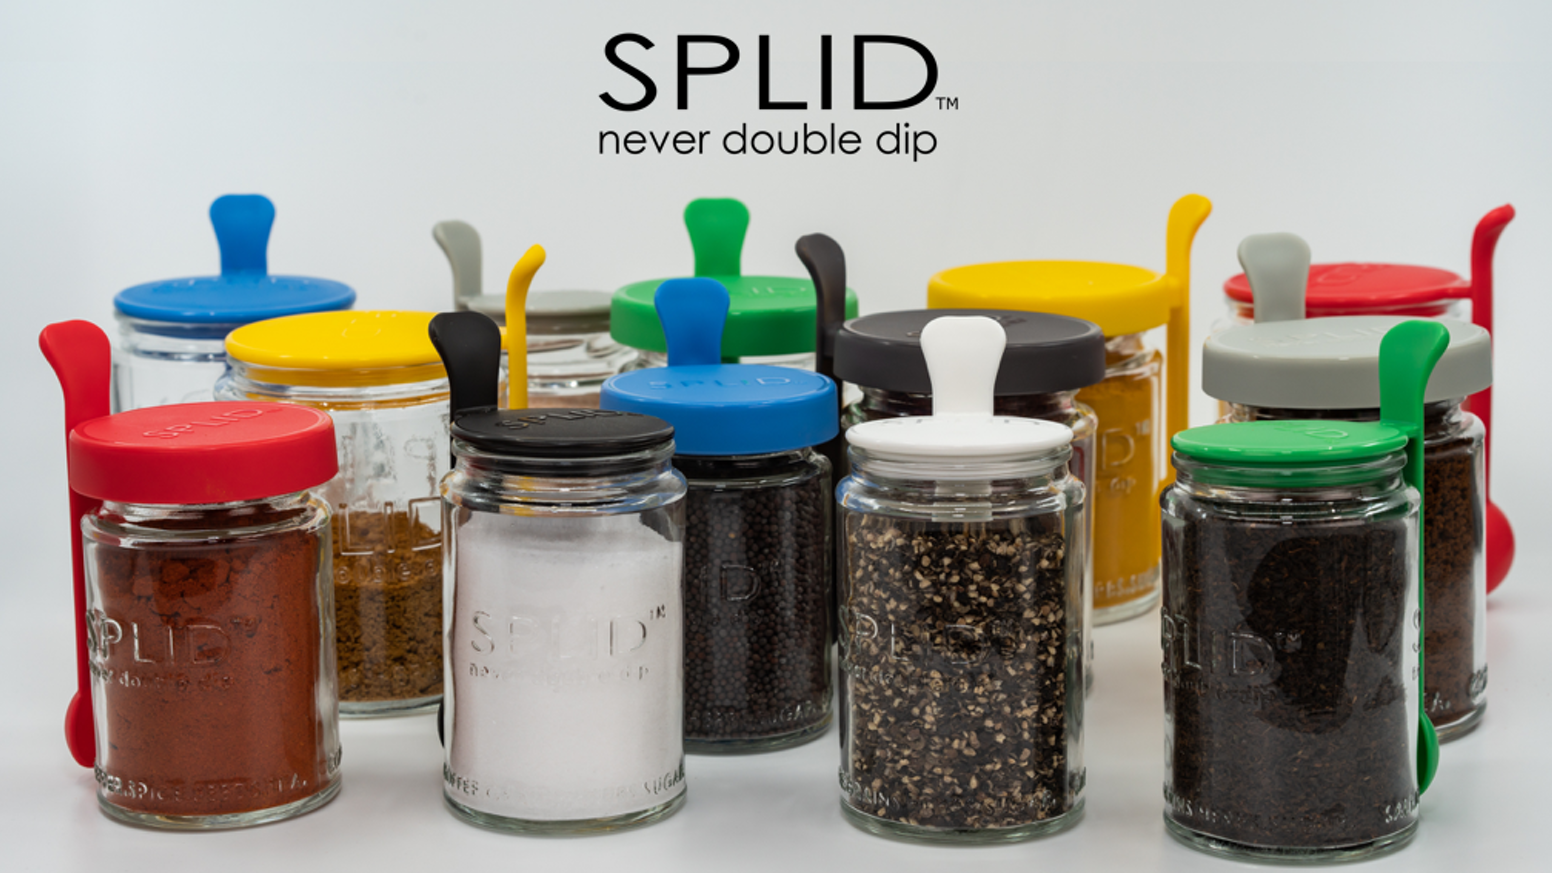 SPLID is an innovative world first design & Finalist in the Victorian Premiers Design Awards 2017.